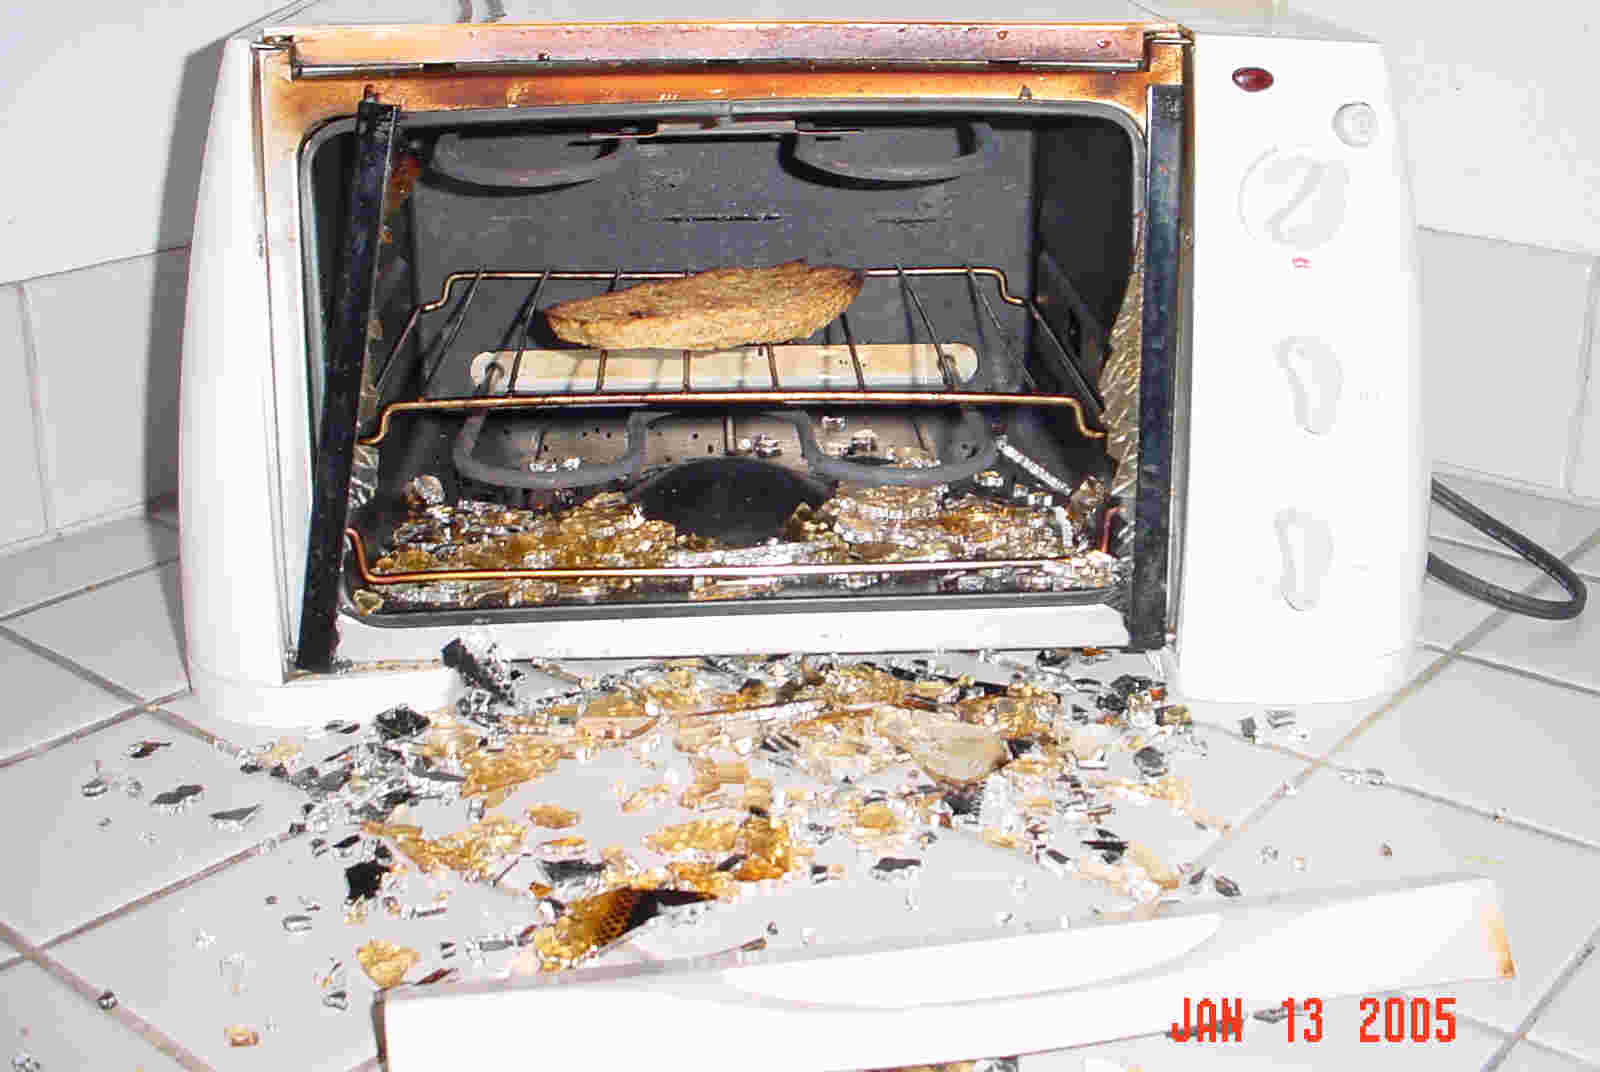 Concealed Cabinet Warning The Toastmaster Brand Toaster Oven That Comes  With A Non Stick Removable Insert